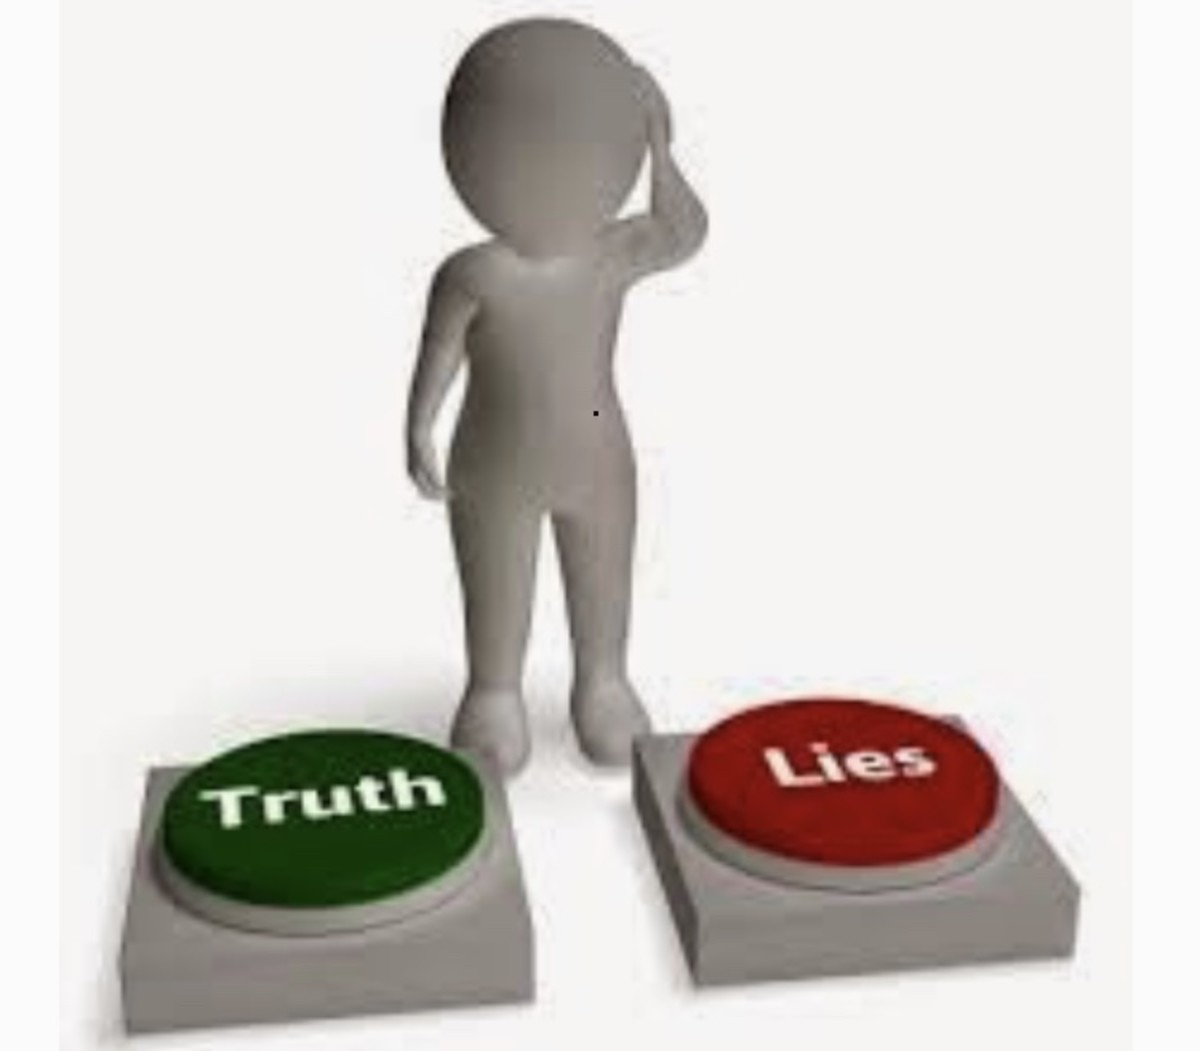 Will the Real Liar Please Stand Up?